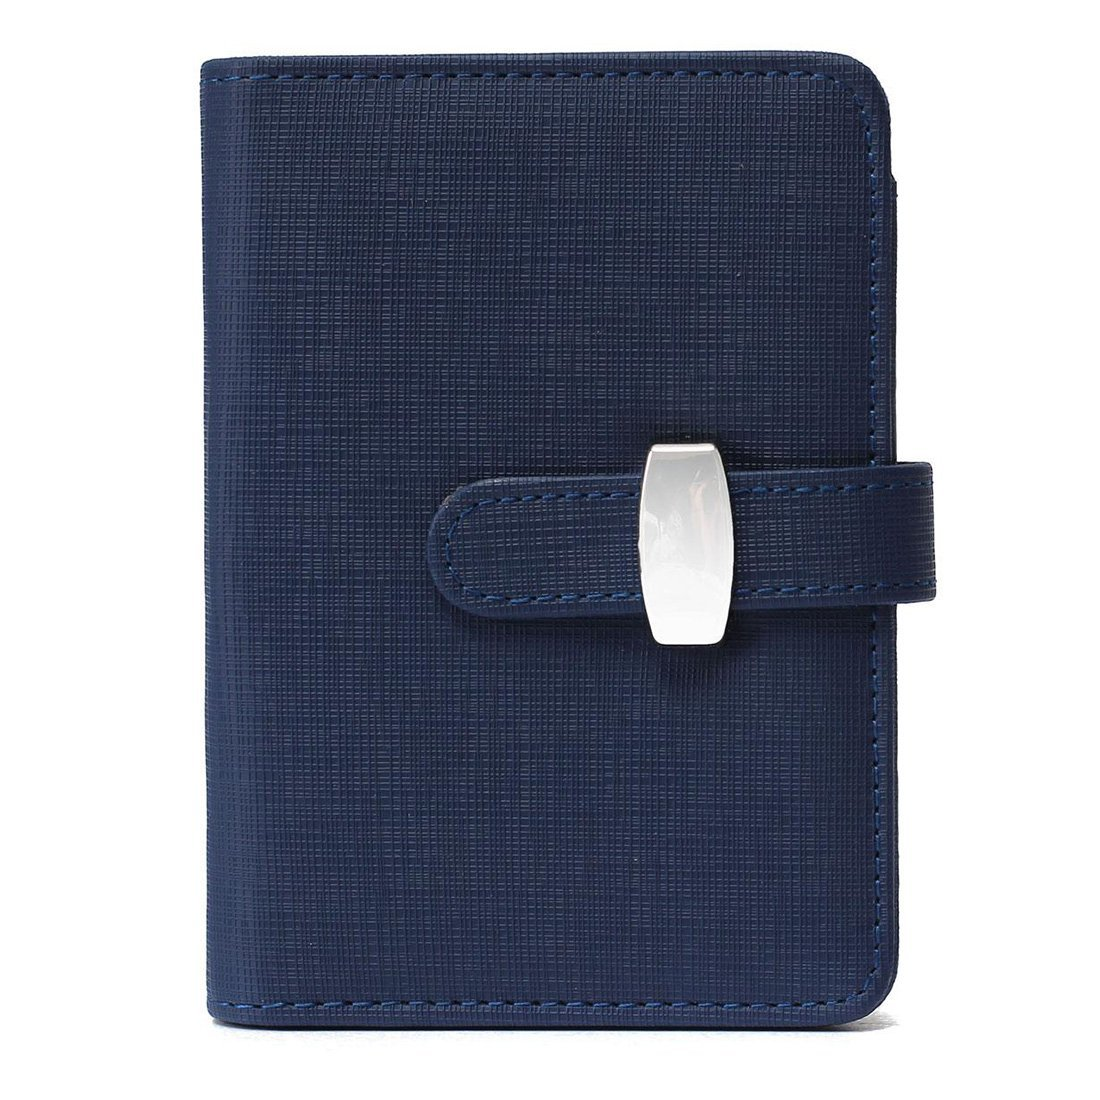 TOOGOO(R) Modern Design A6 Personal Organiser Planner PU Leather Cover Diary Notebook School Office Stationery£¨Blue£